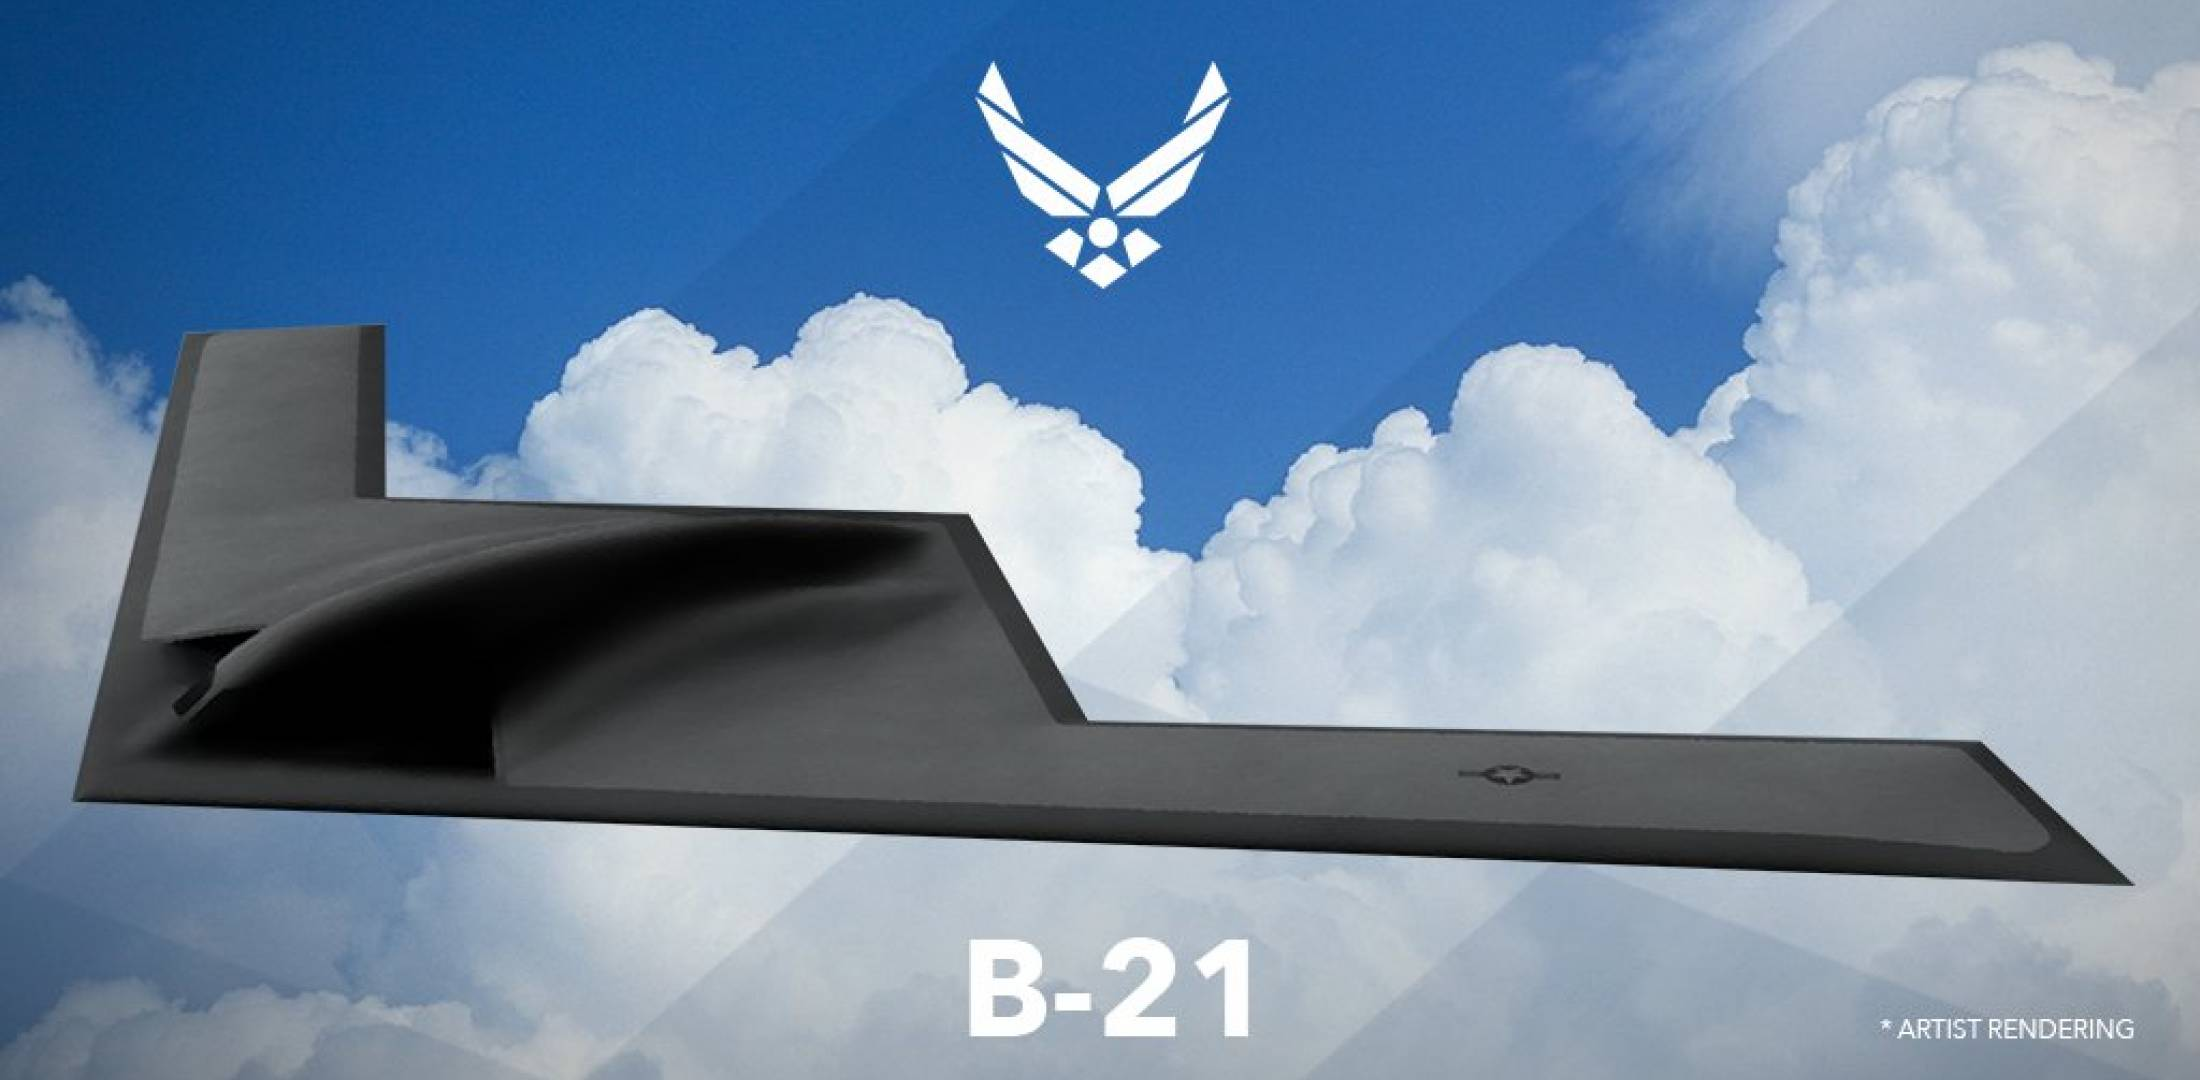 U.S. Air Force B-21 bomber